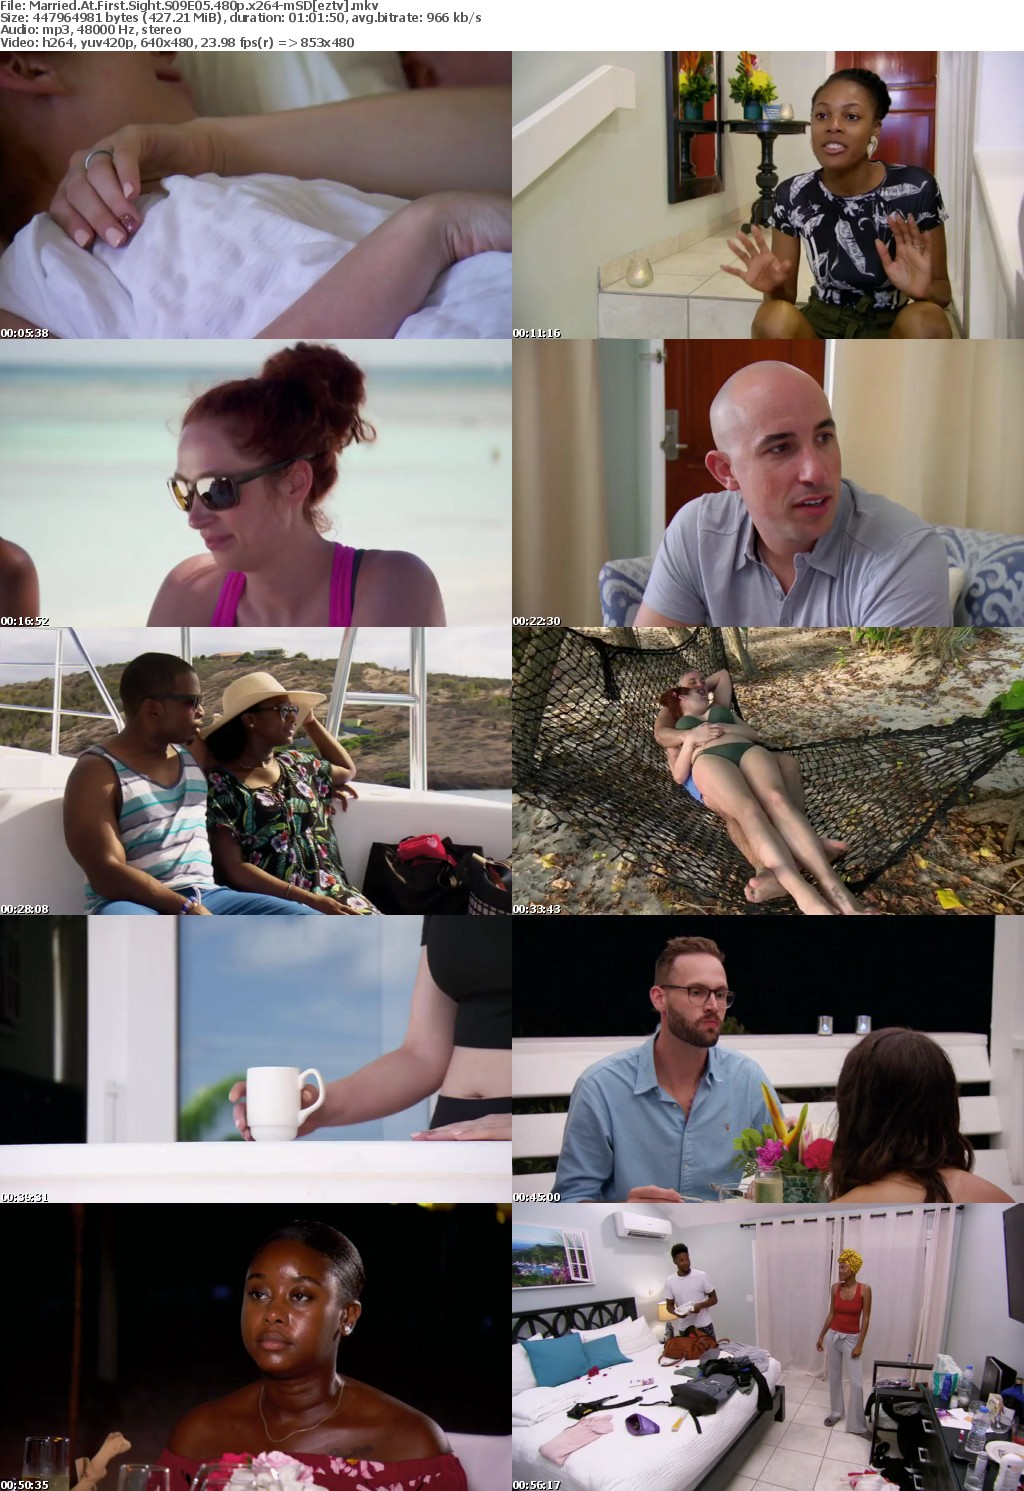 Married At First Sight S09E05 480p x264 mSD